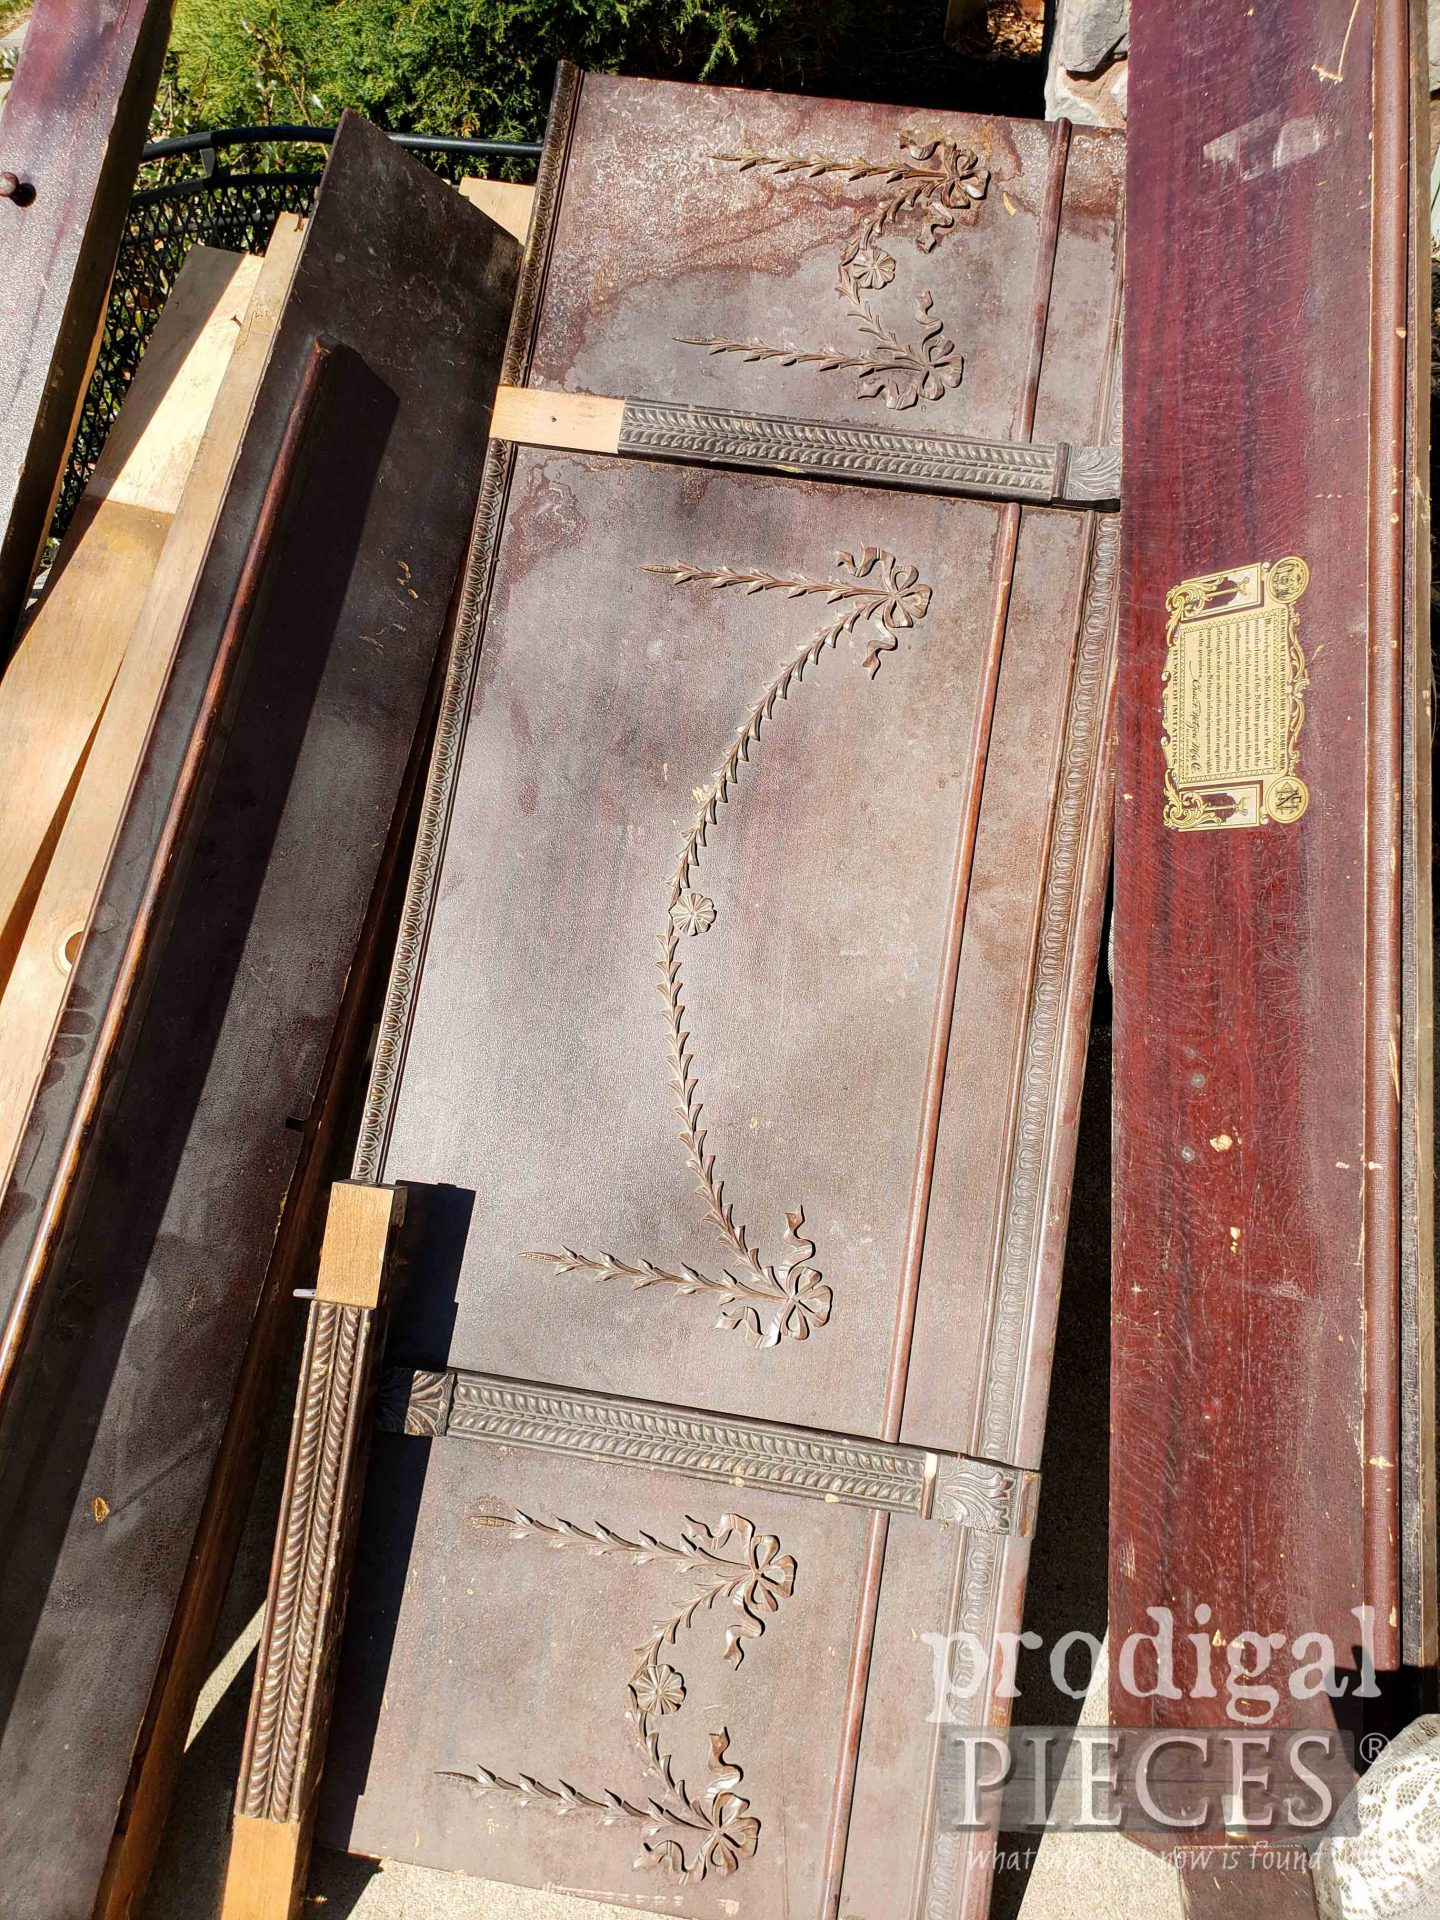 1800's Upright Antique Grand Piano Face   Prodigal Pieces   prodigalpieces.com #prodigalpieces